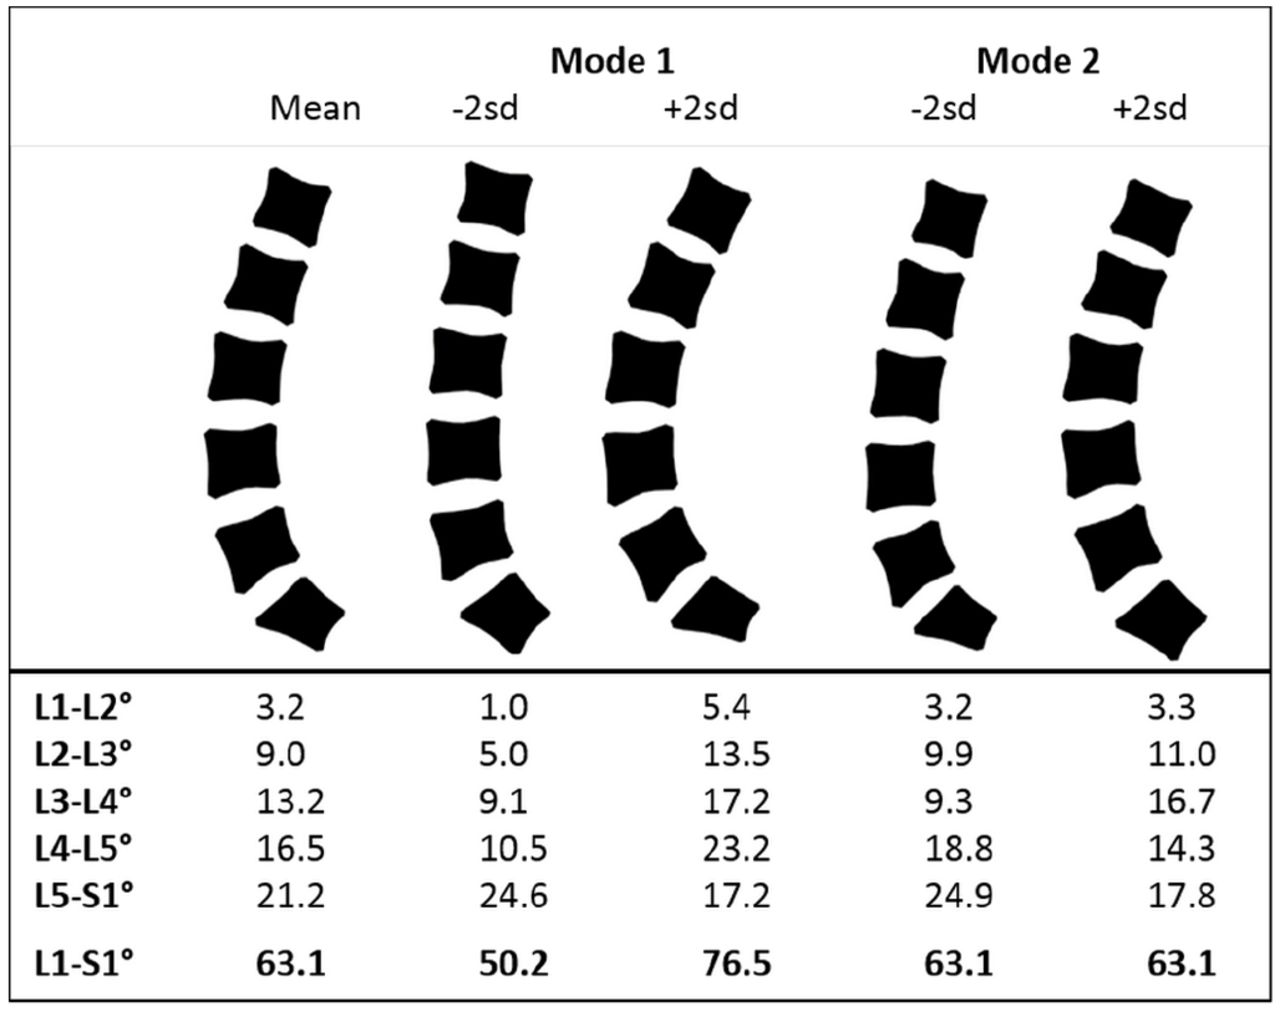 Variation In Lifting Kinematics Related To Individual